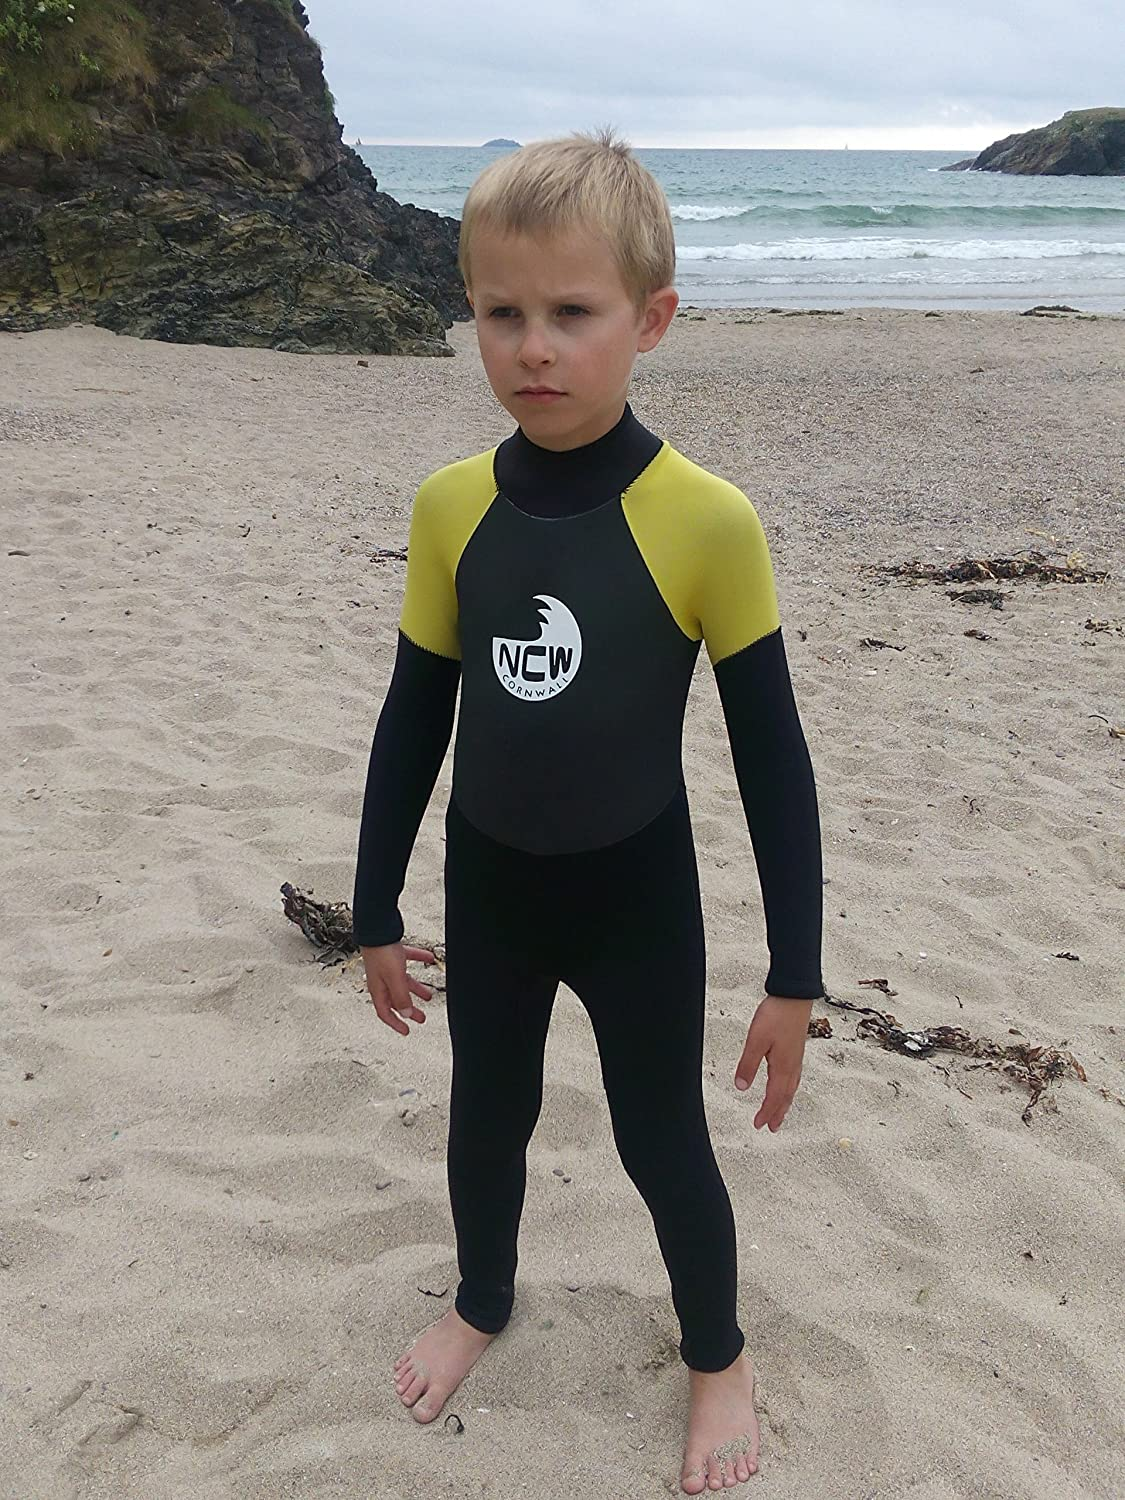 Idea for many watersports or ju Kids warm 5mm full wetsuit for all watersports // beach use Children wear these suits all year round Ideal for keeping your child warm as we find little ones often get very cold even in the summer sizes for 1 to 14 years